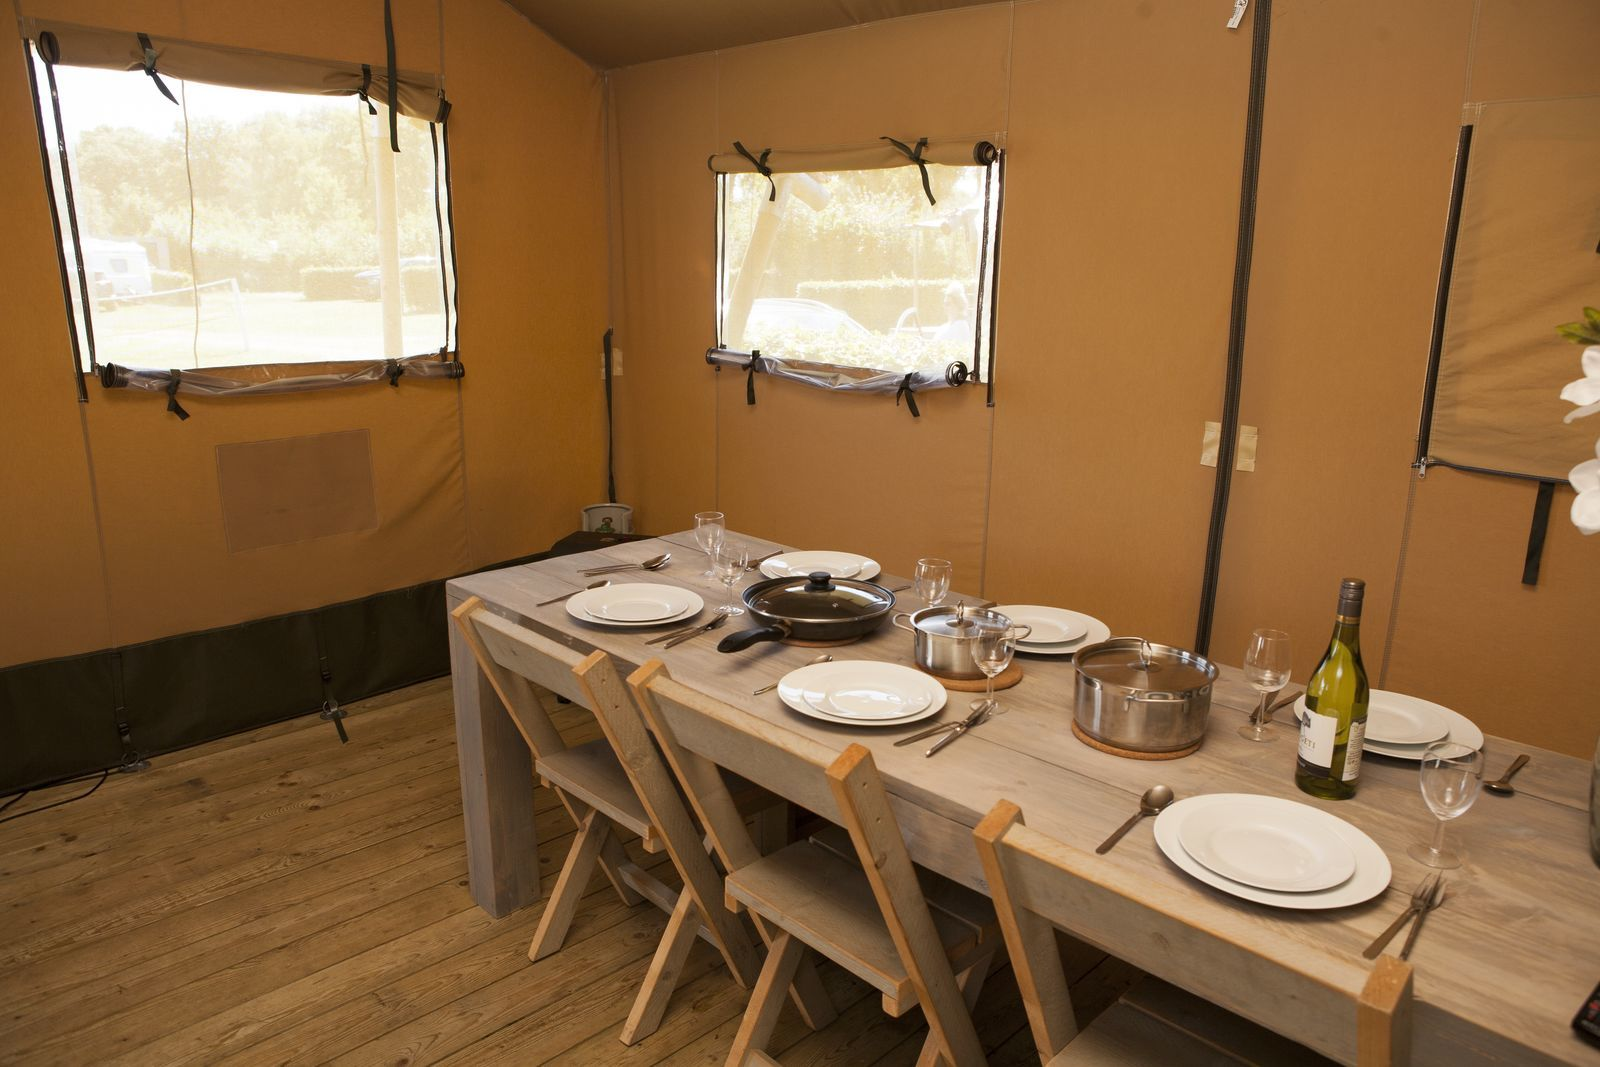 6-person luxury safari tent